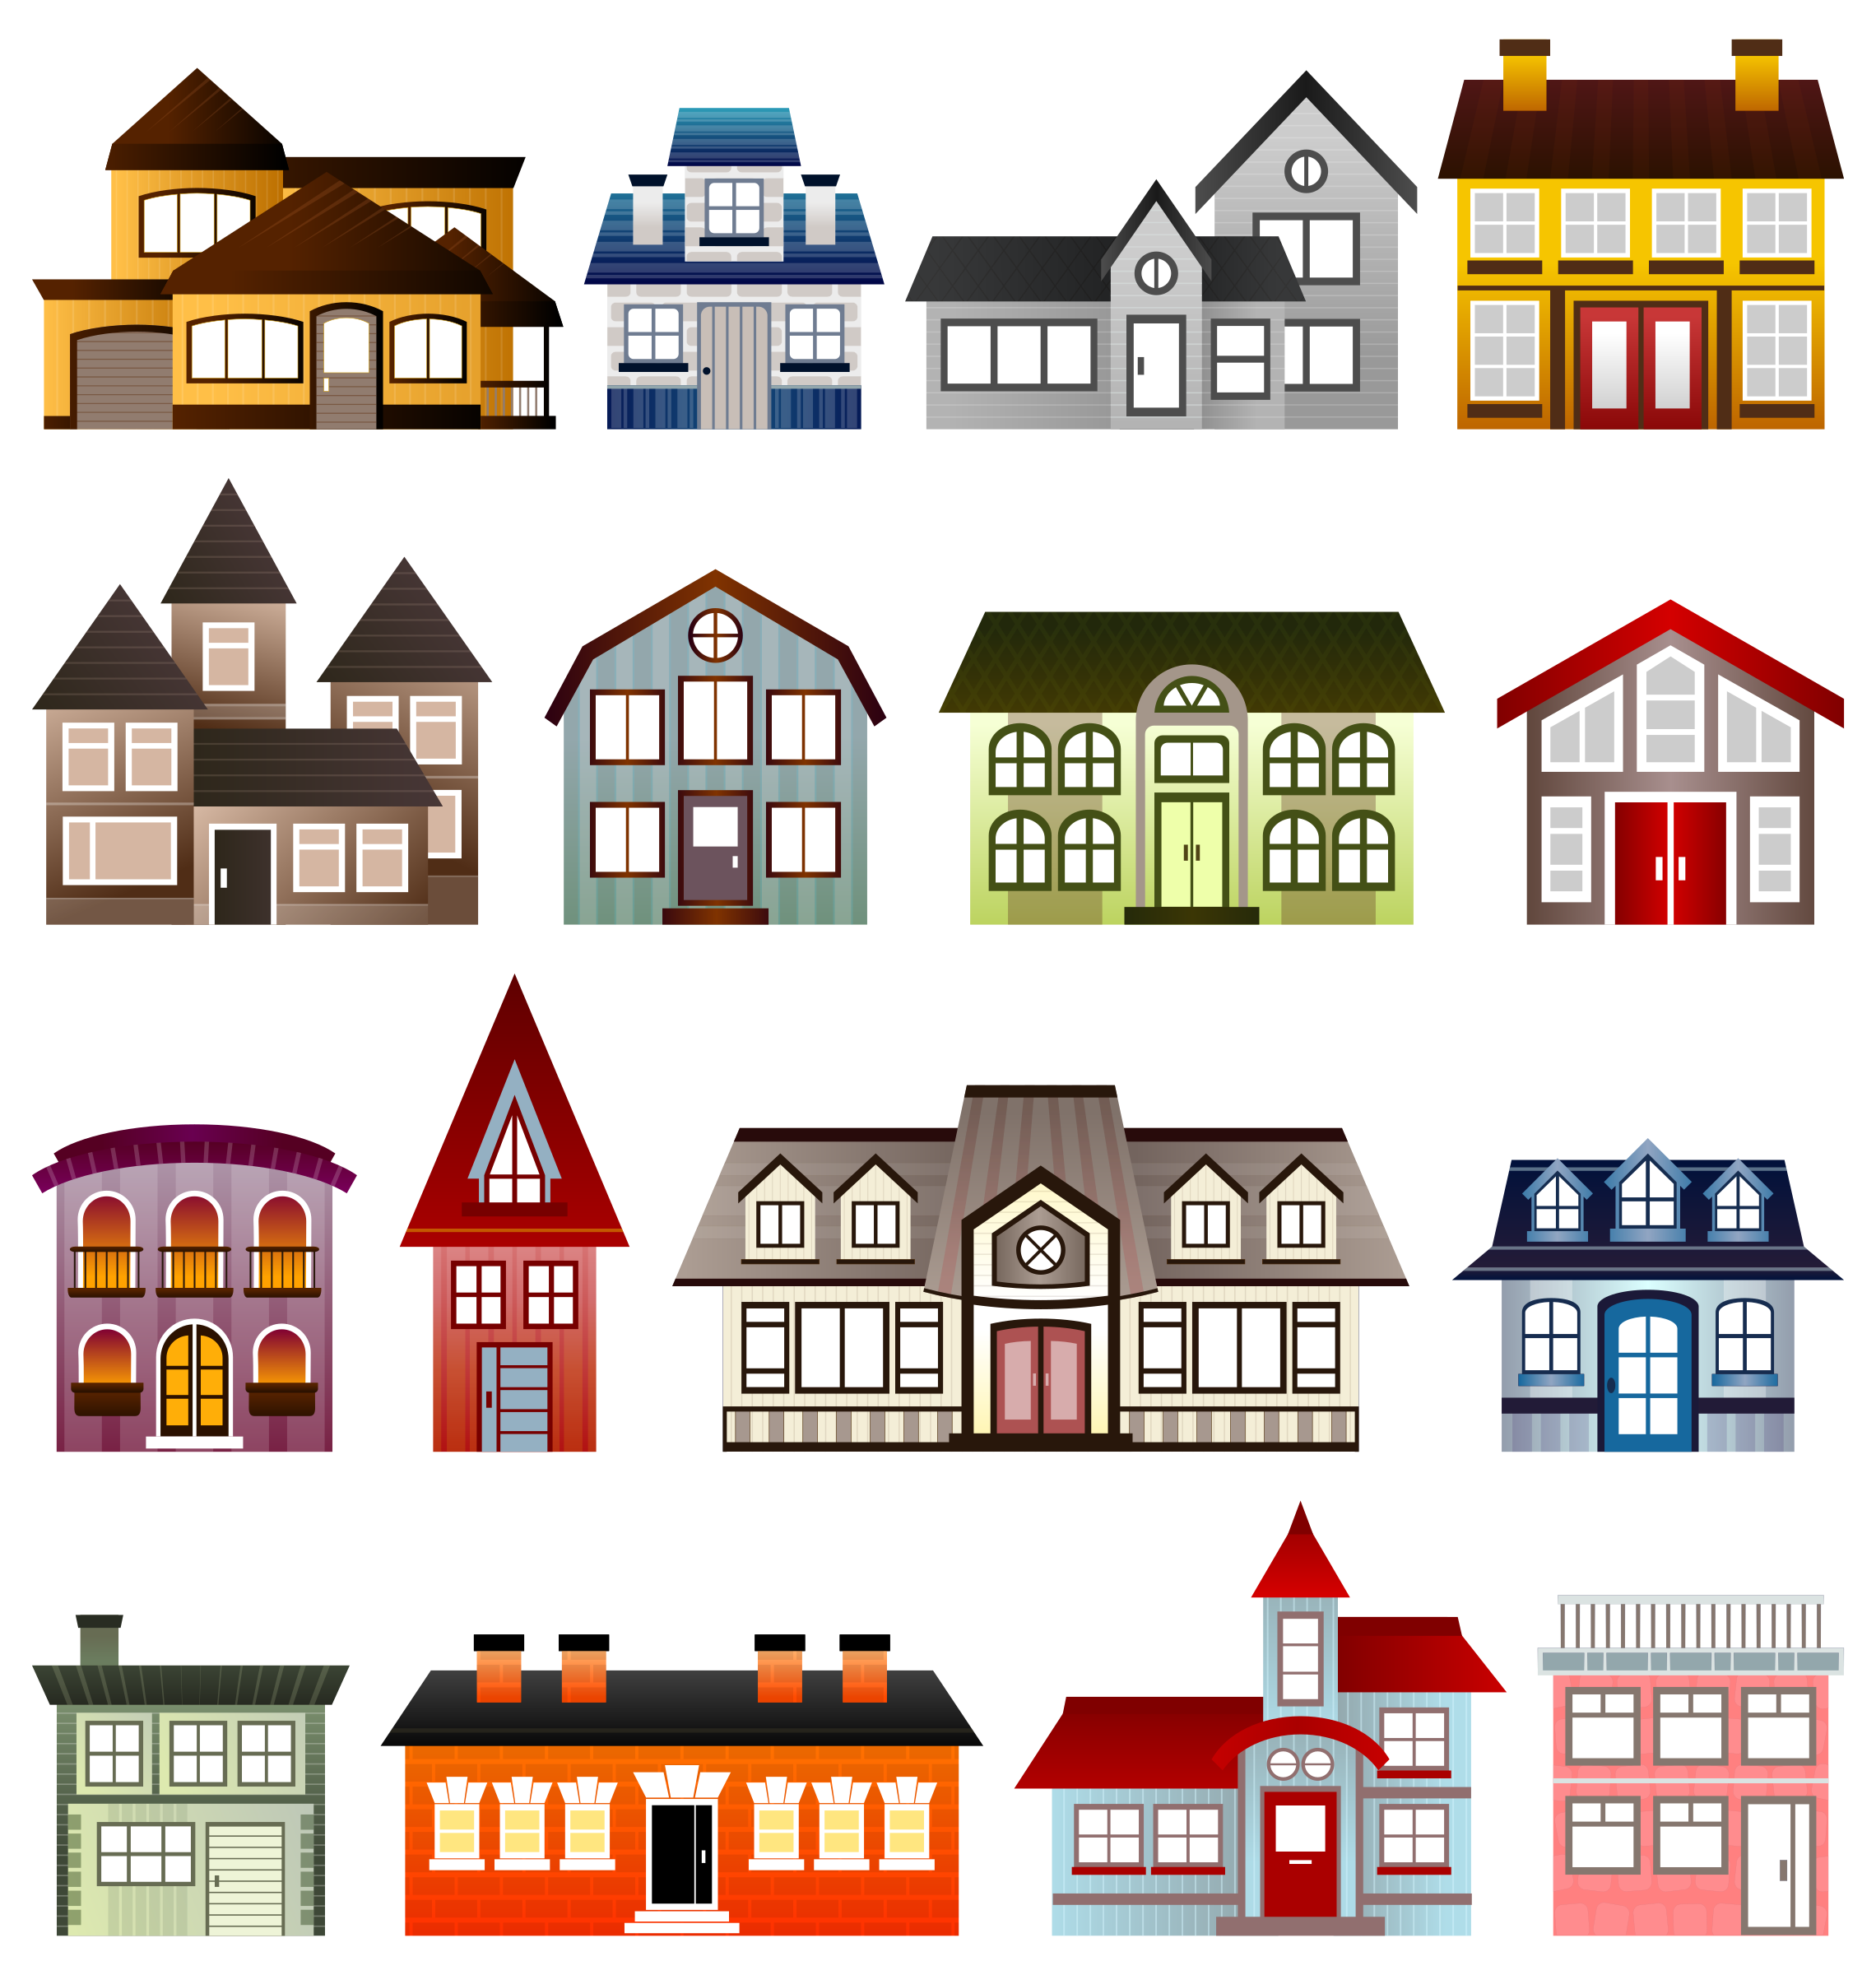 Row clipart property. Clip art of homes